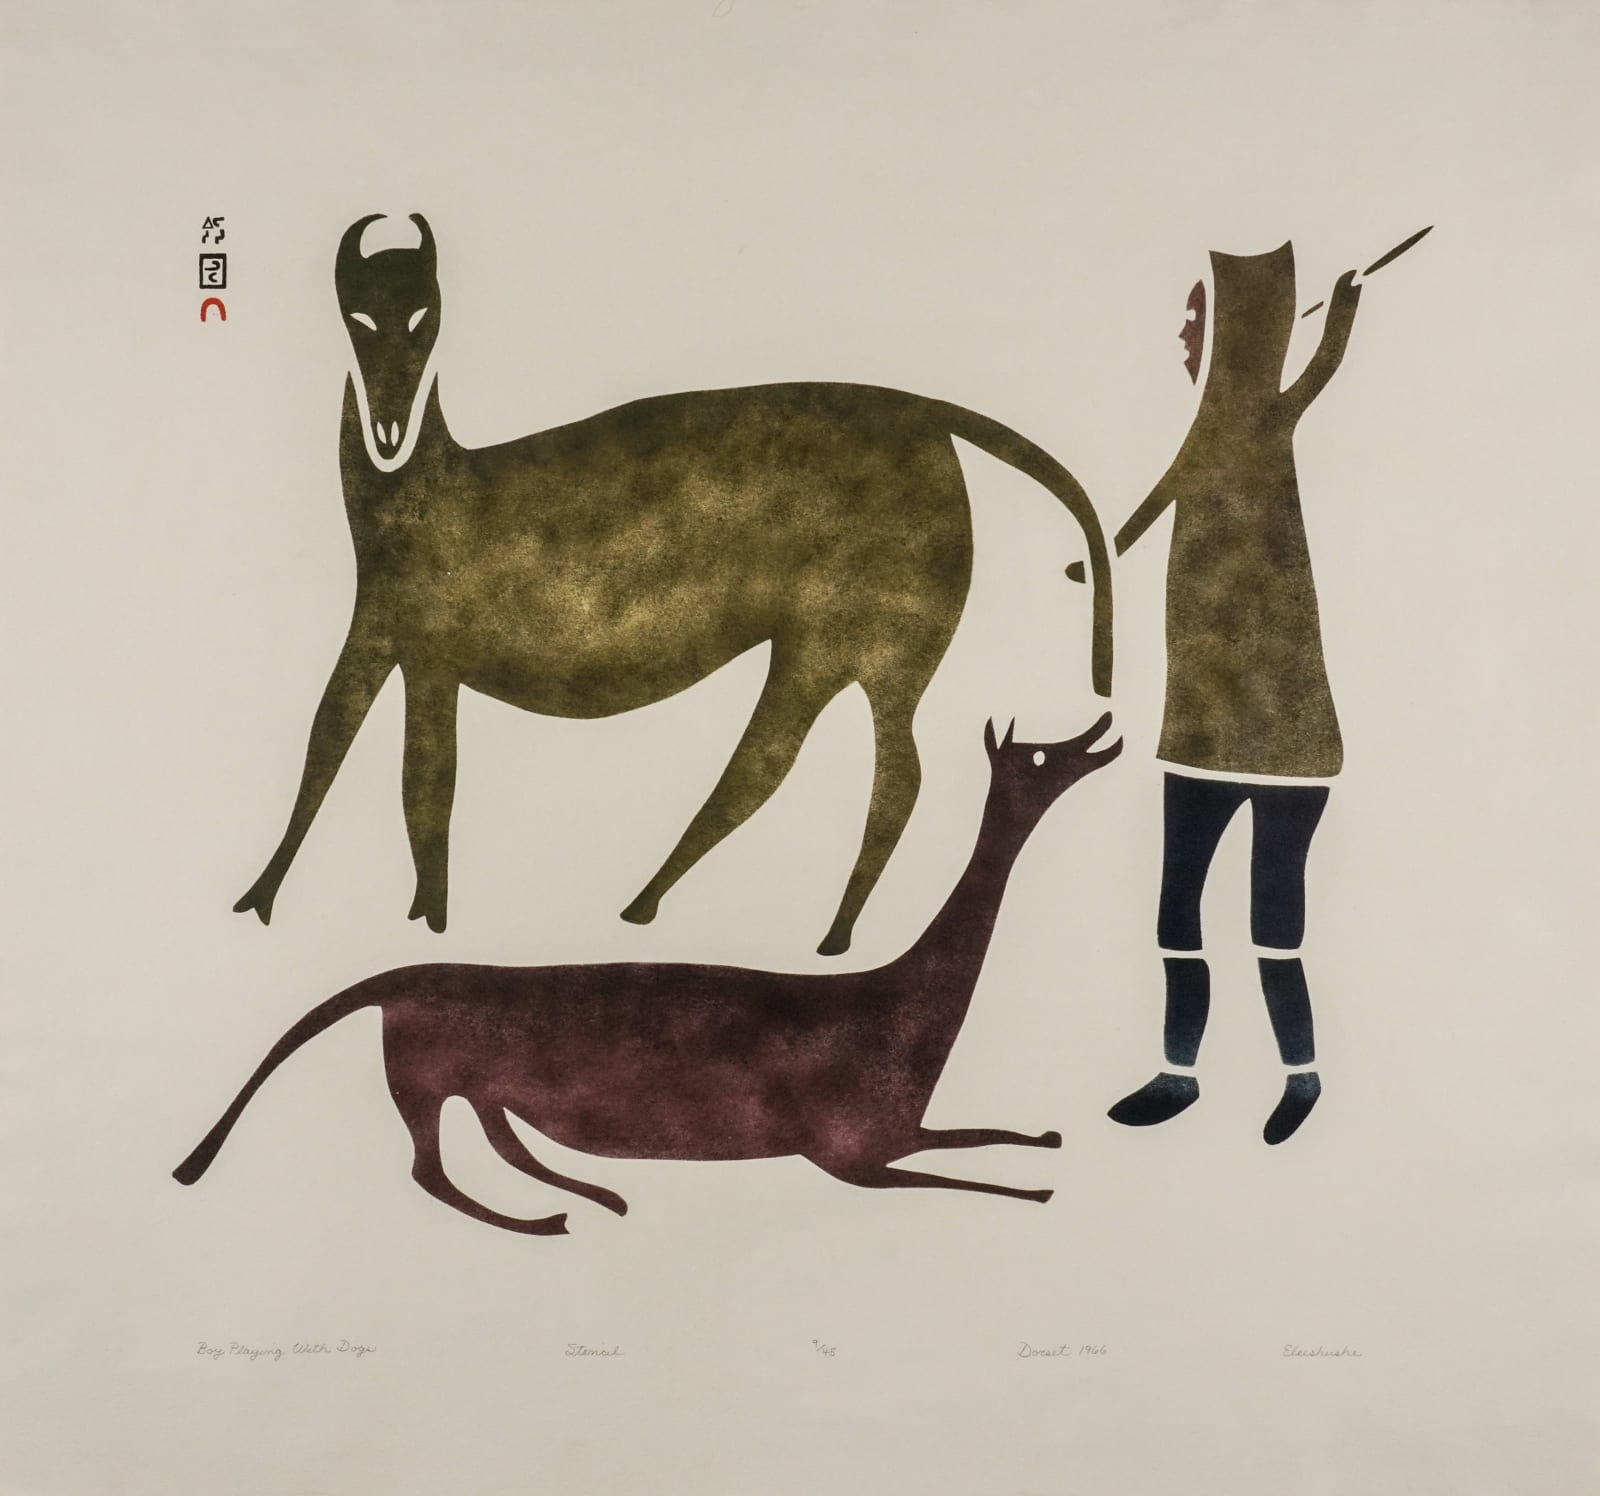 ELEESHUSHE PARR (1896-1975) KINNGAIT (CAPE DORSET) Boy Playing With Dogs, 1966 (2012) stencil on Hamilton Andorra paper, 26 1/8 x 28 in (66.5 x 71 cm) ESTIMATE: $700 — $1,000 New Price: $550